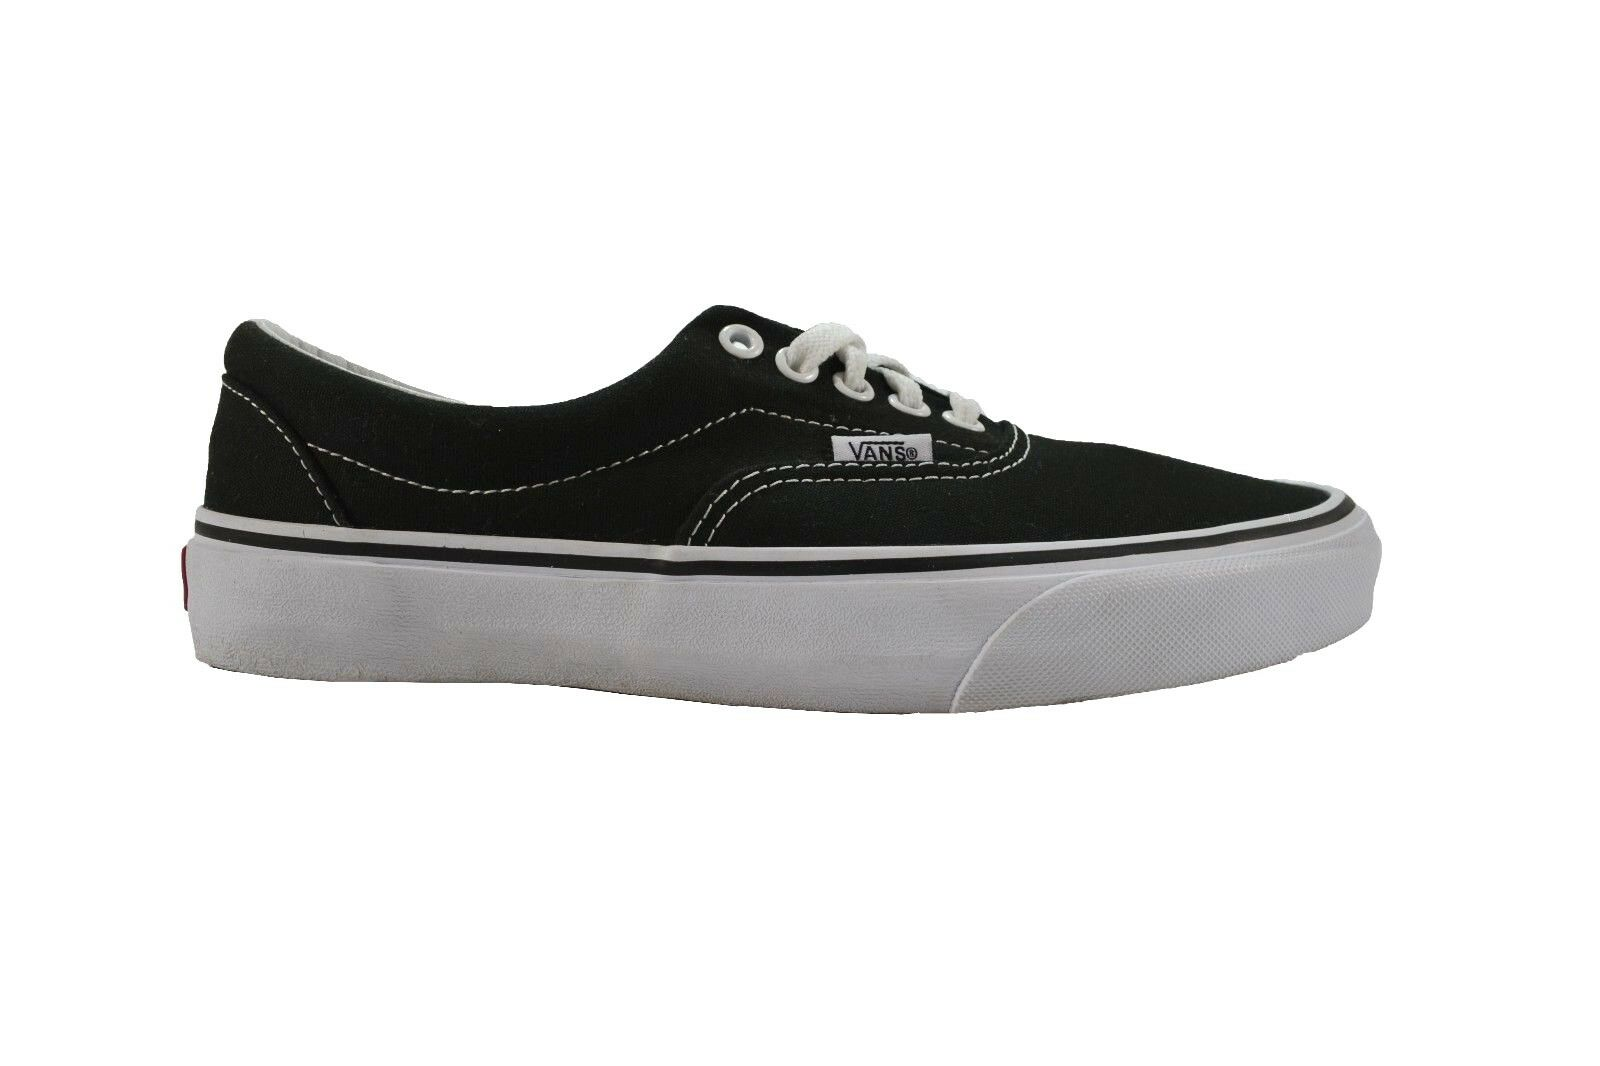 Vans Vans Vans ERA Black White VN-0EWZBLK (265) Men's Skateboarding Shoes fa11c4